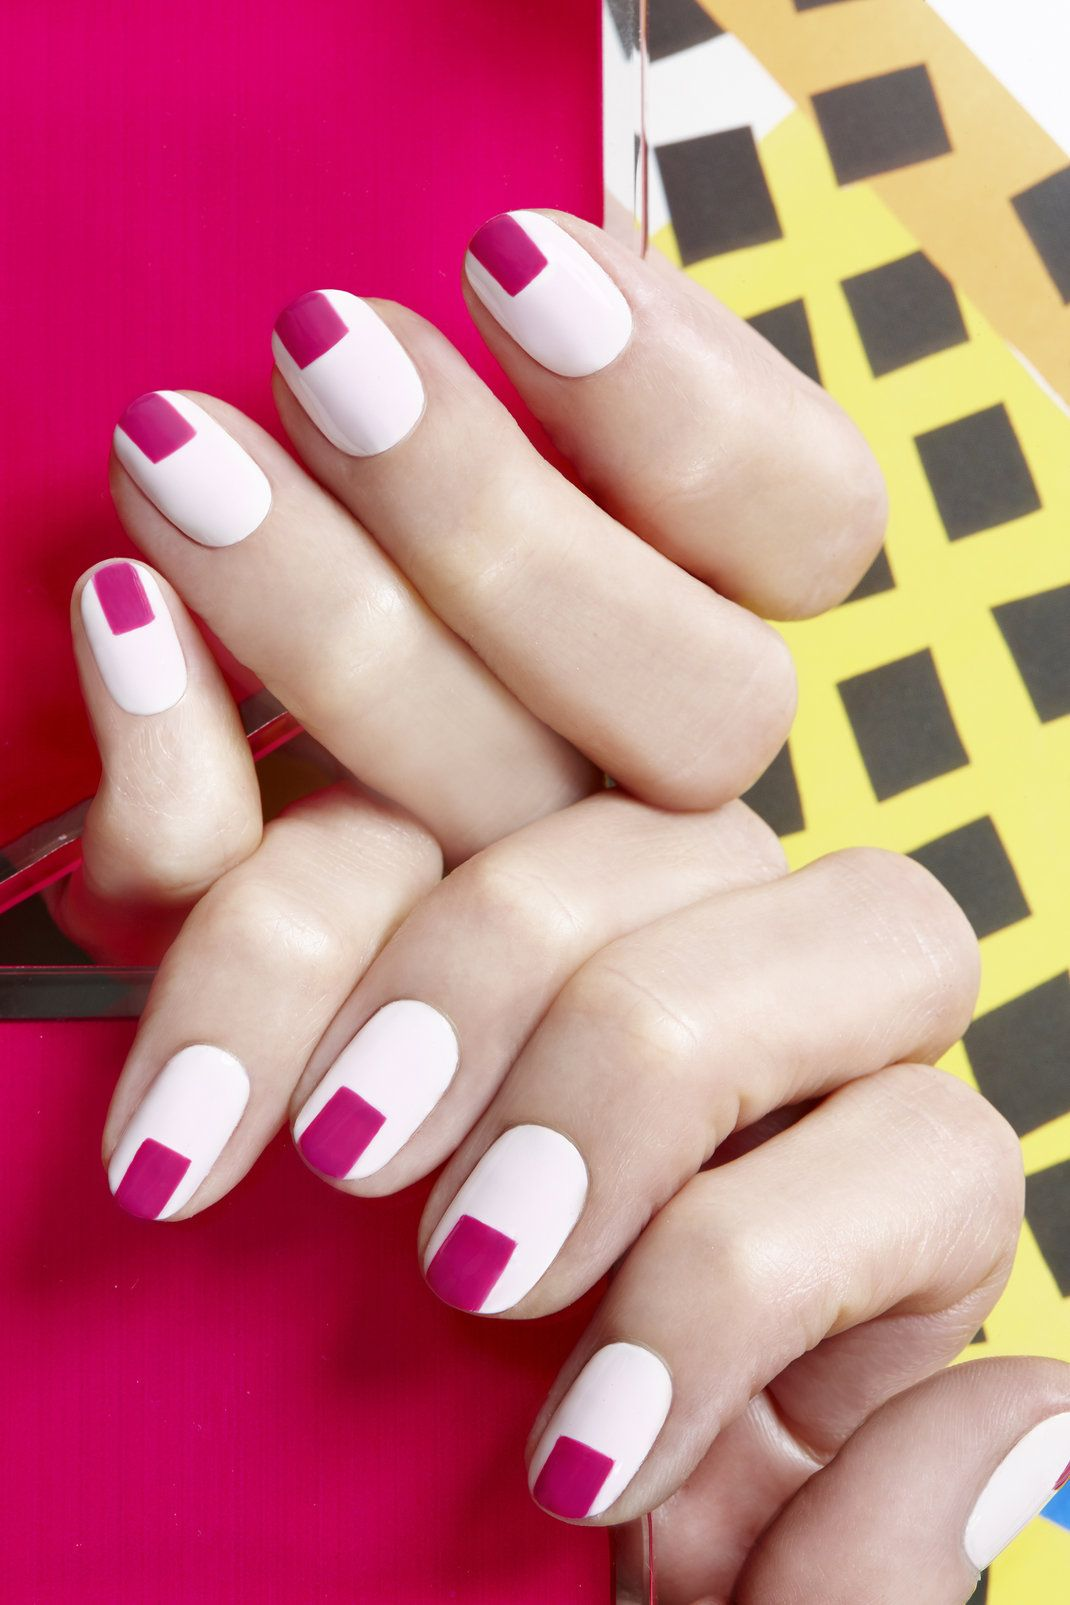 Simple Square Nails by JINsoon | Sephora Beauty Board #Sephora ...